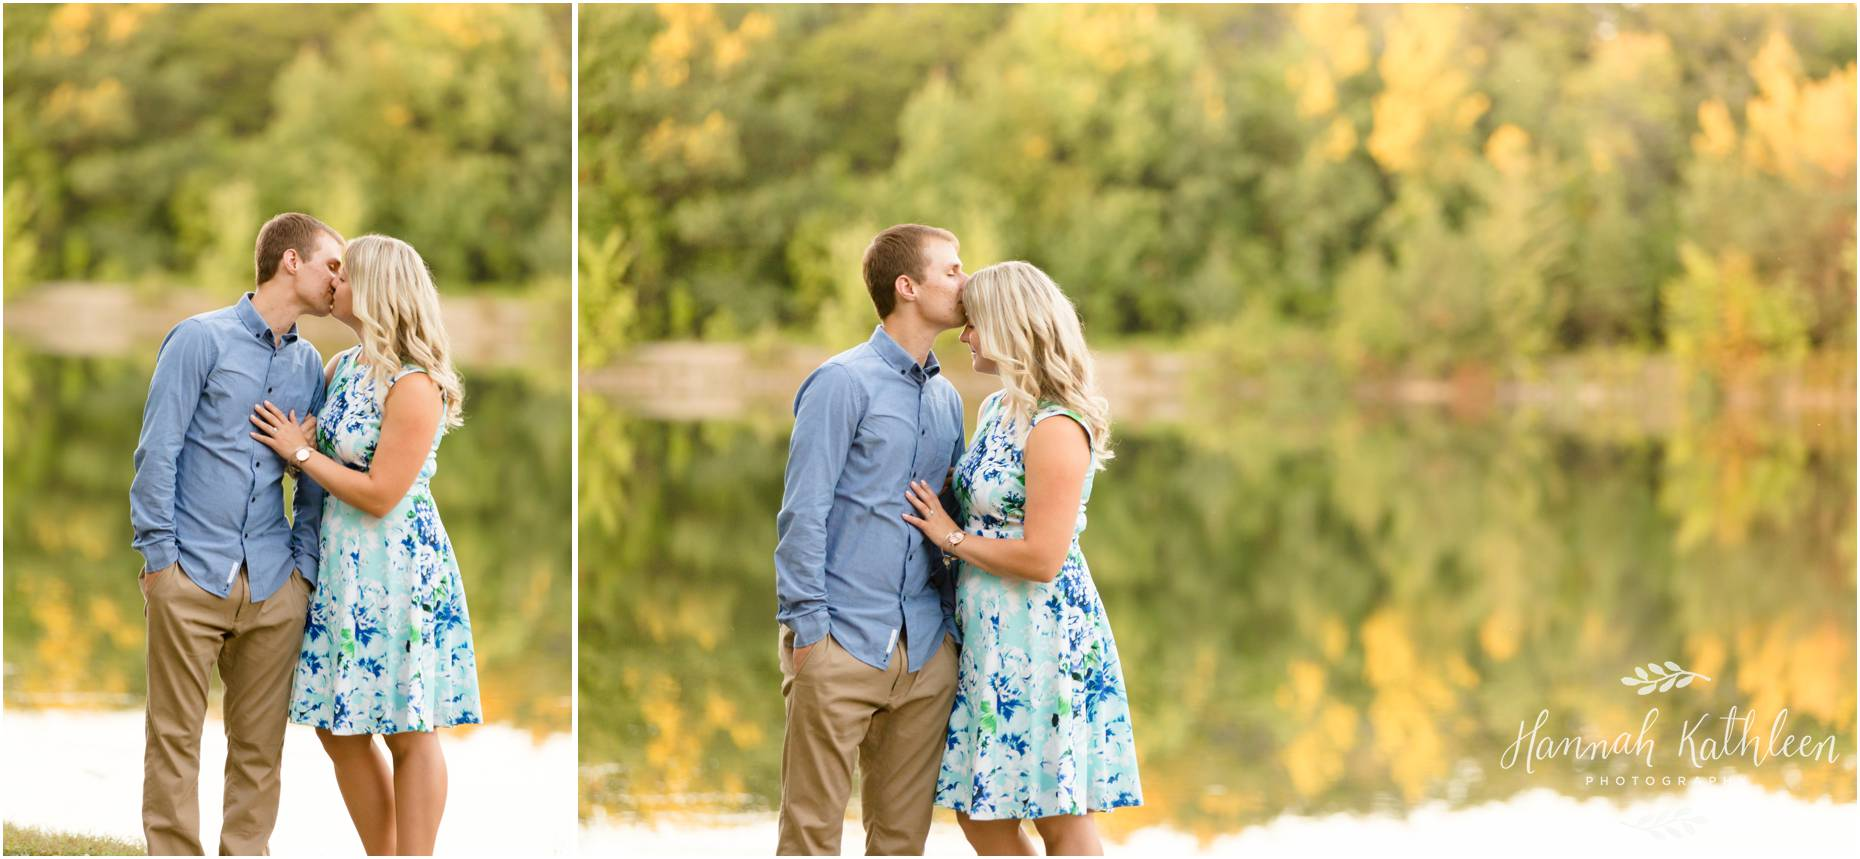 Aj_Brittany_Orchard_Park_Engagement_Photography